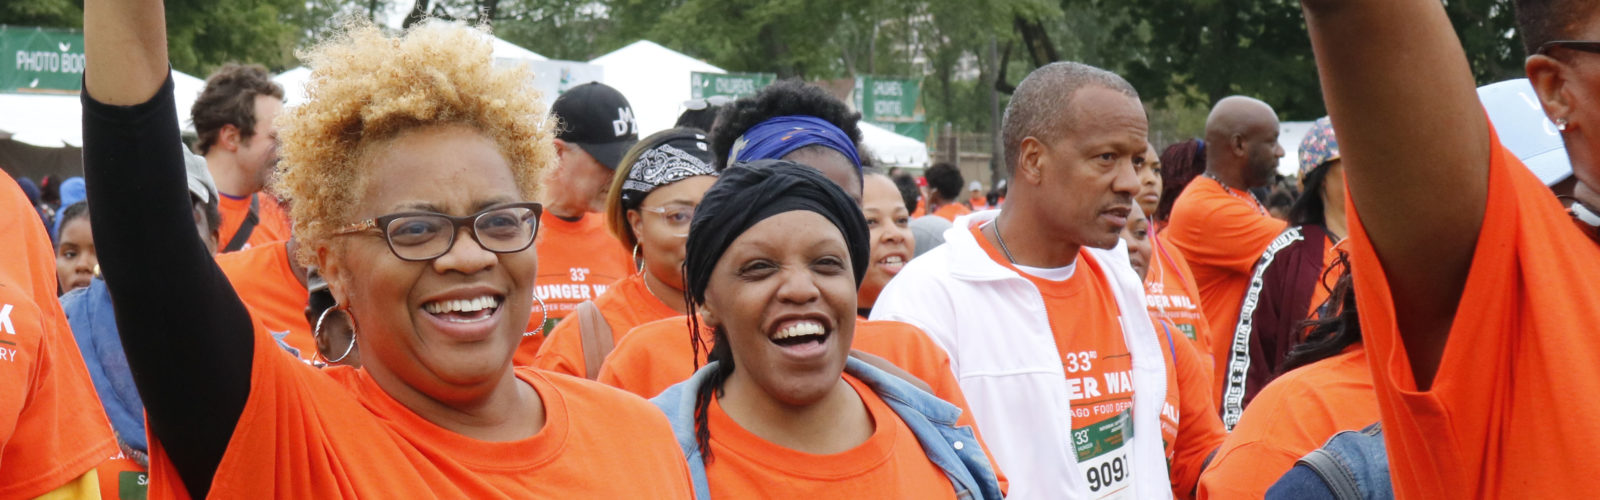 People smiling and cheering at Hunger Walk